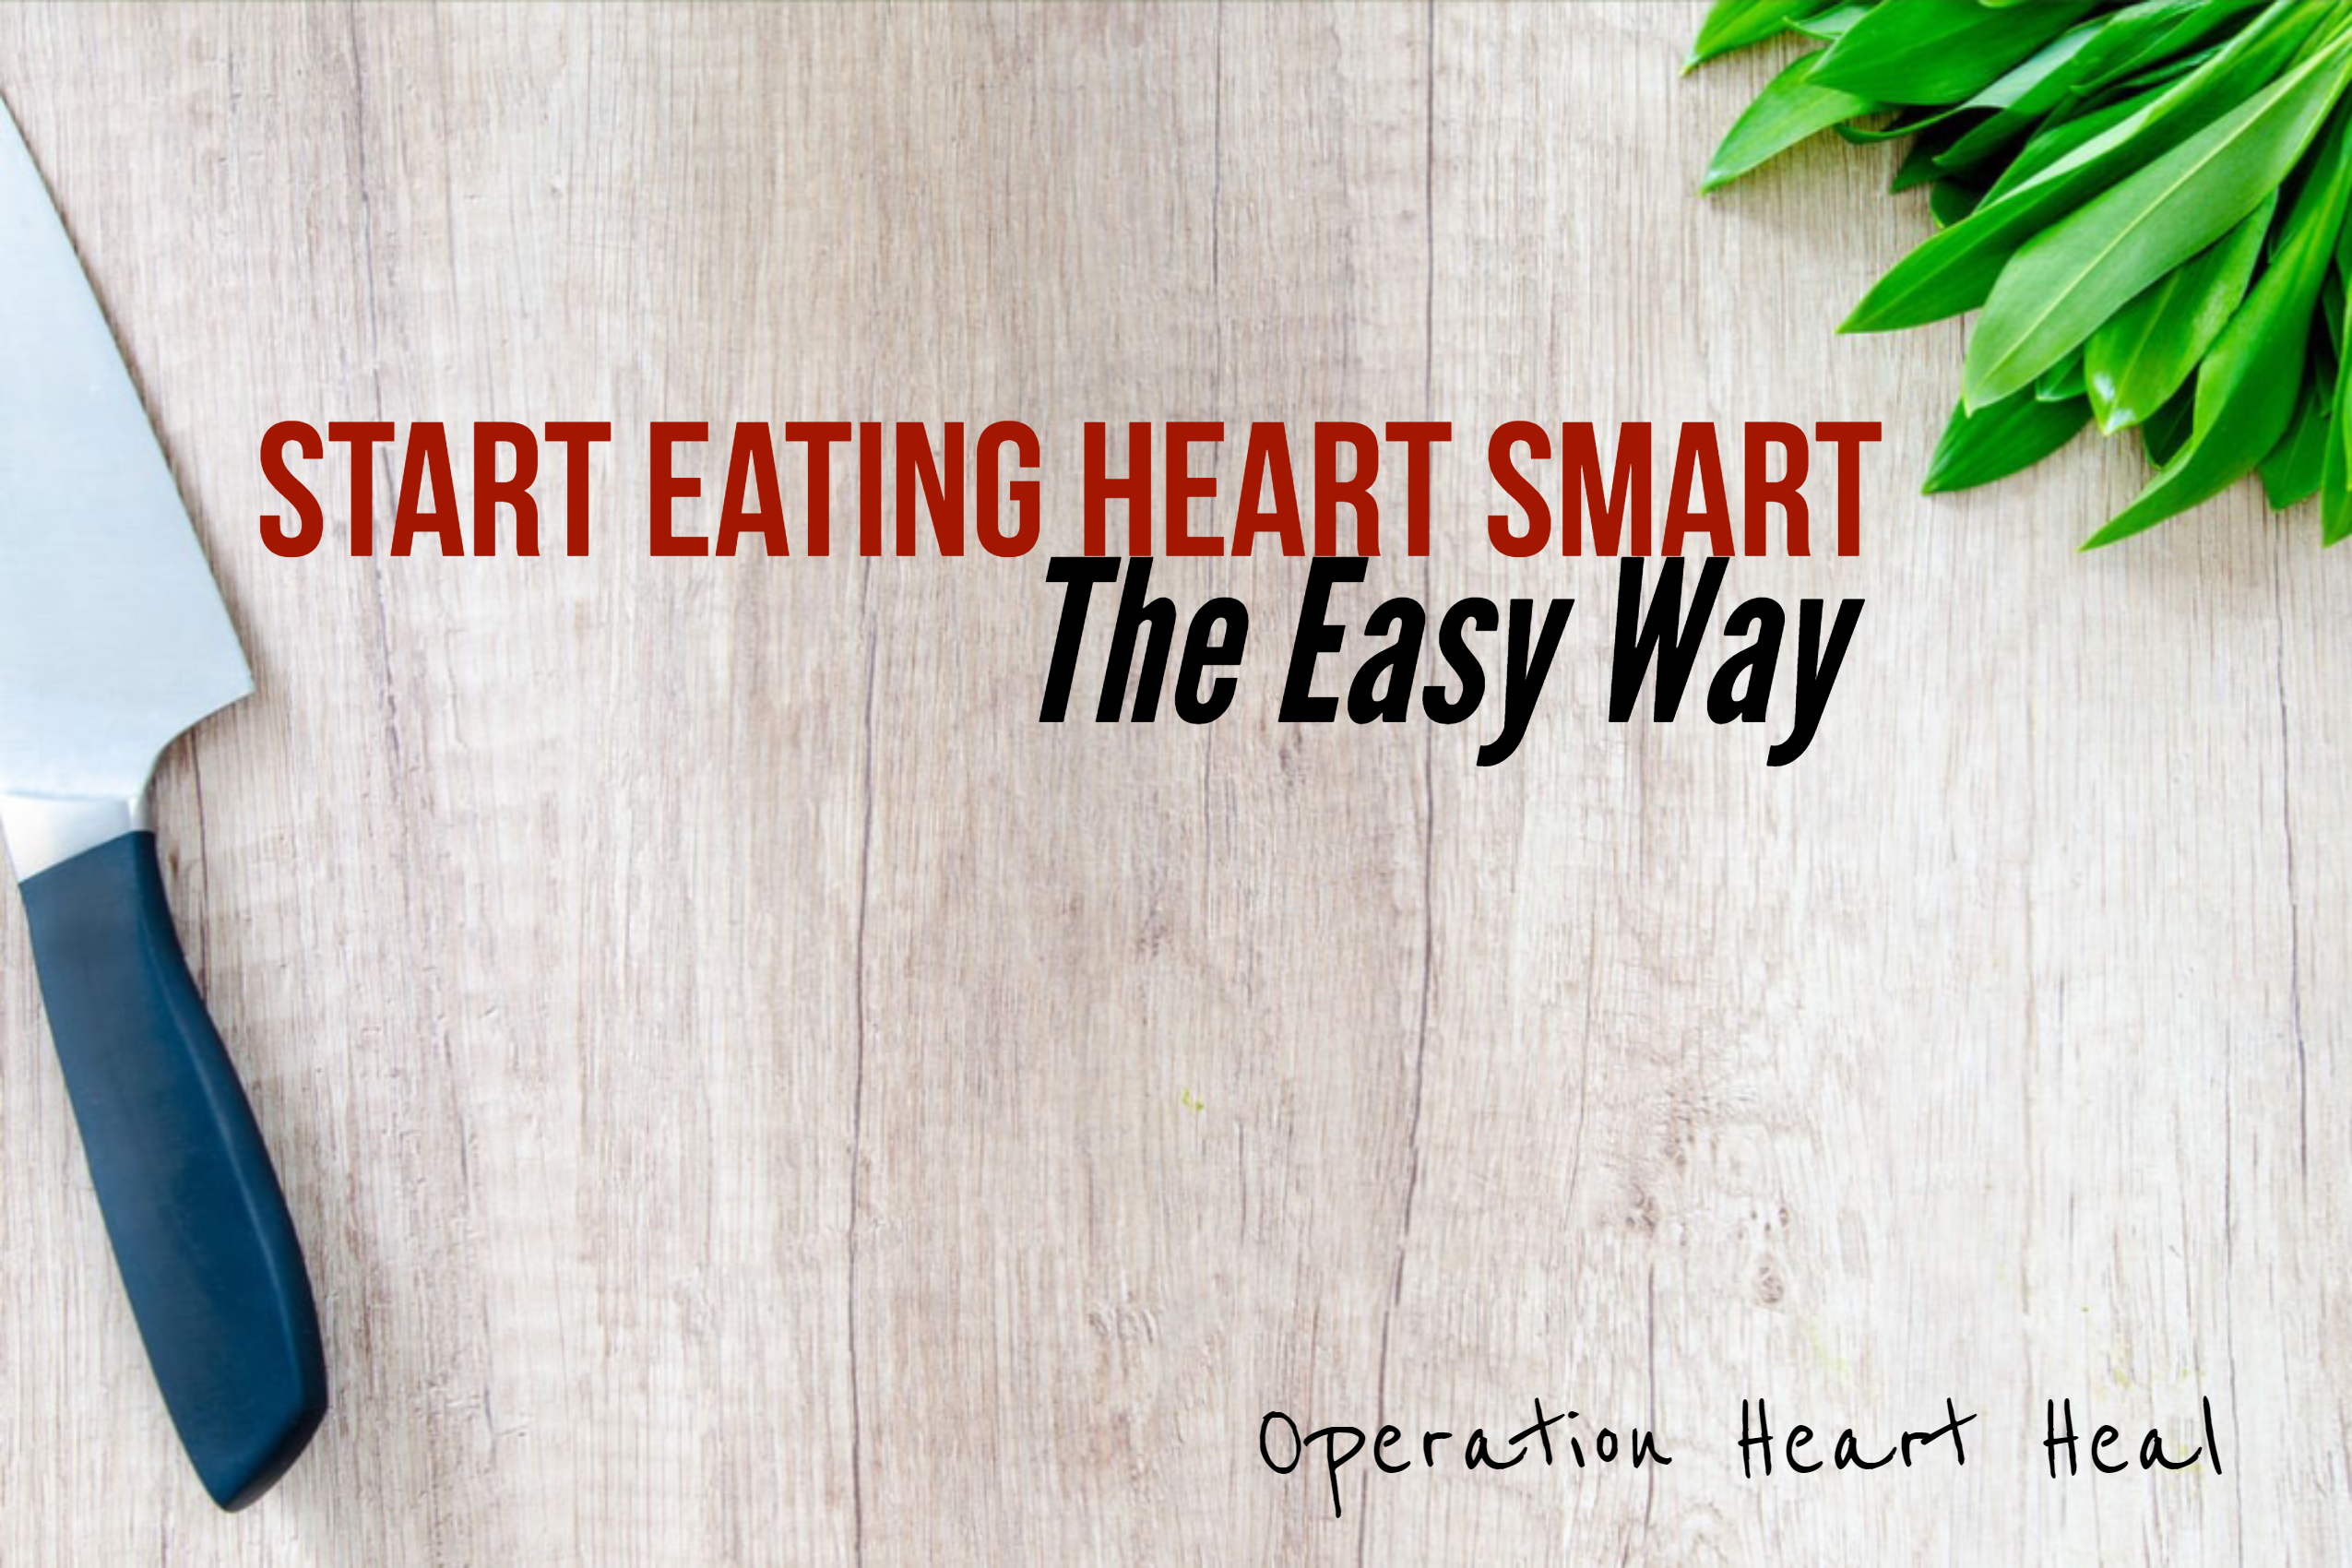 Heart Healthy Eating Heart Smart